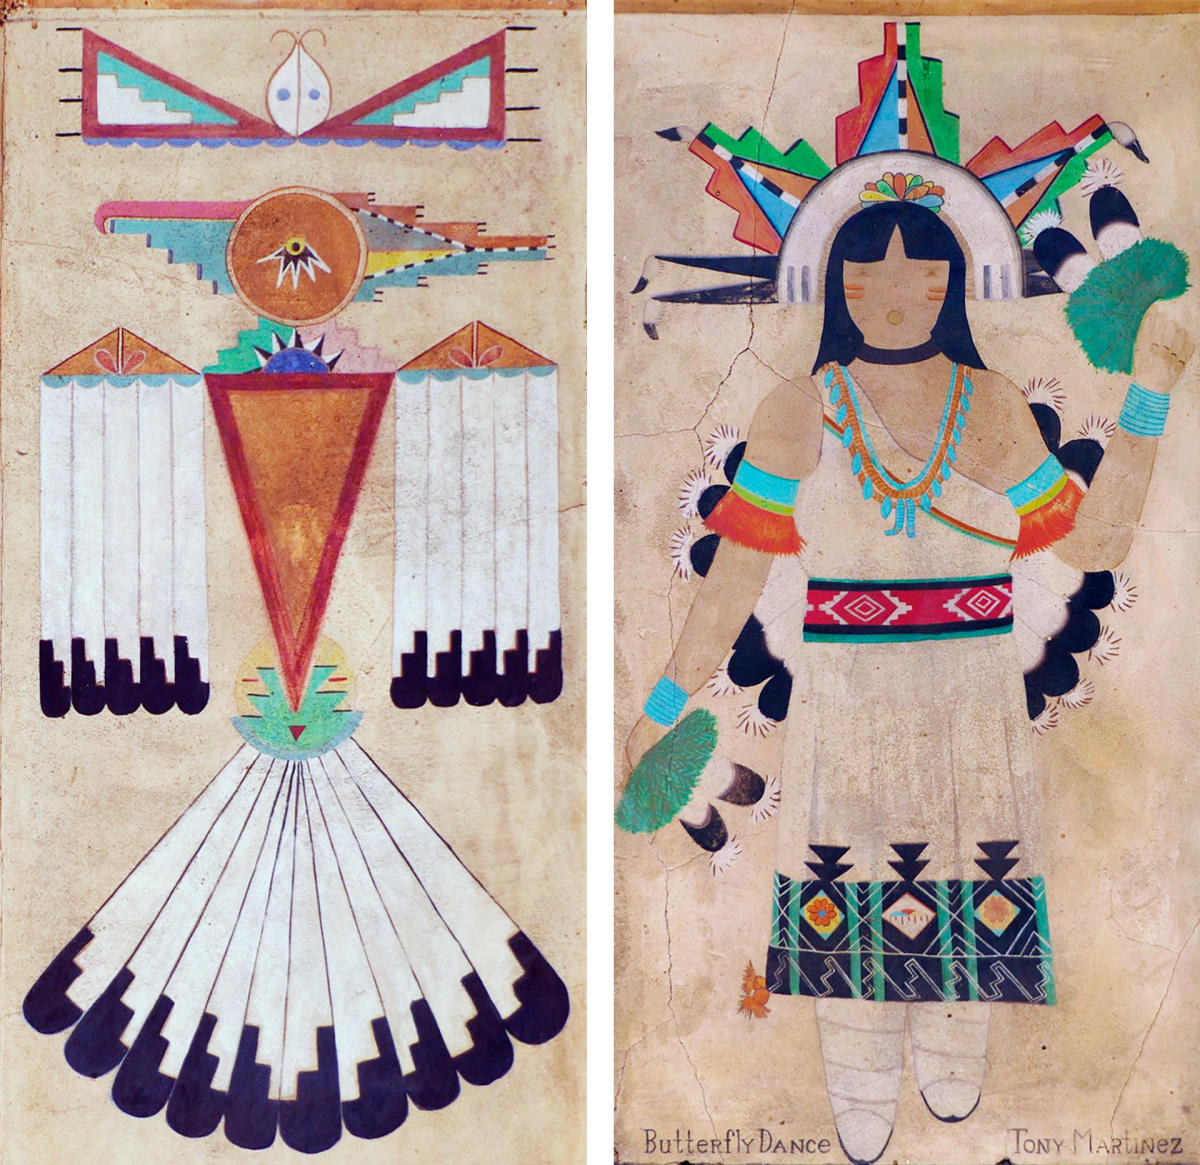 Historic Murals: Tony Martinez (Popovi Da) painted Straight Beak Bird and San Ildefonso Butterfly Maiden for his murals, New Mexico Magazine